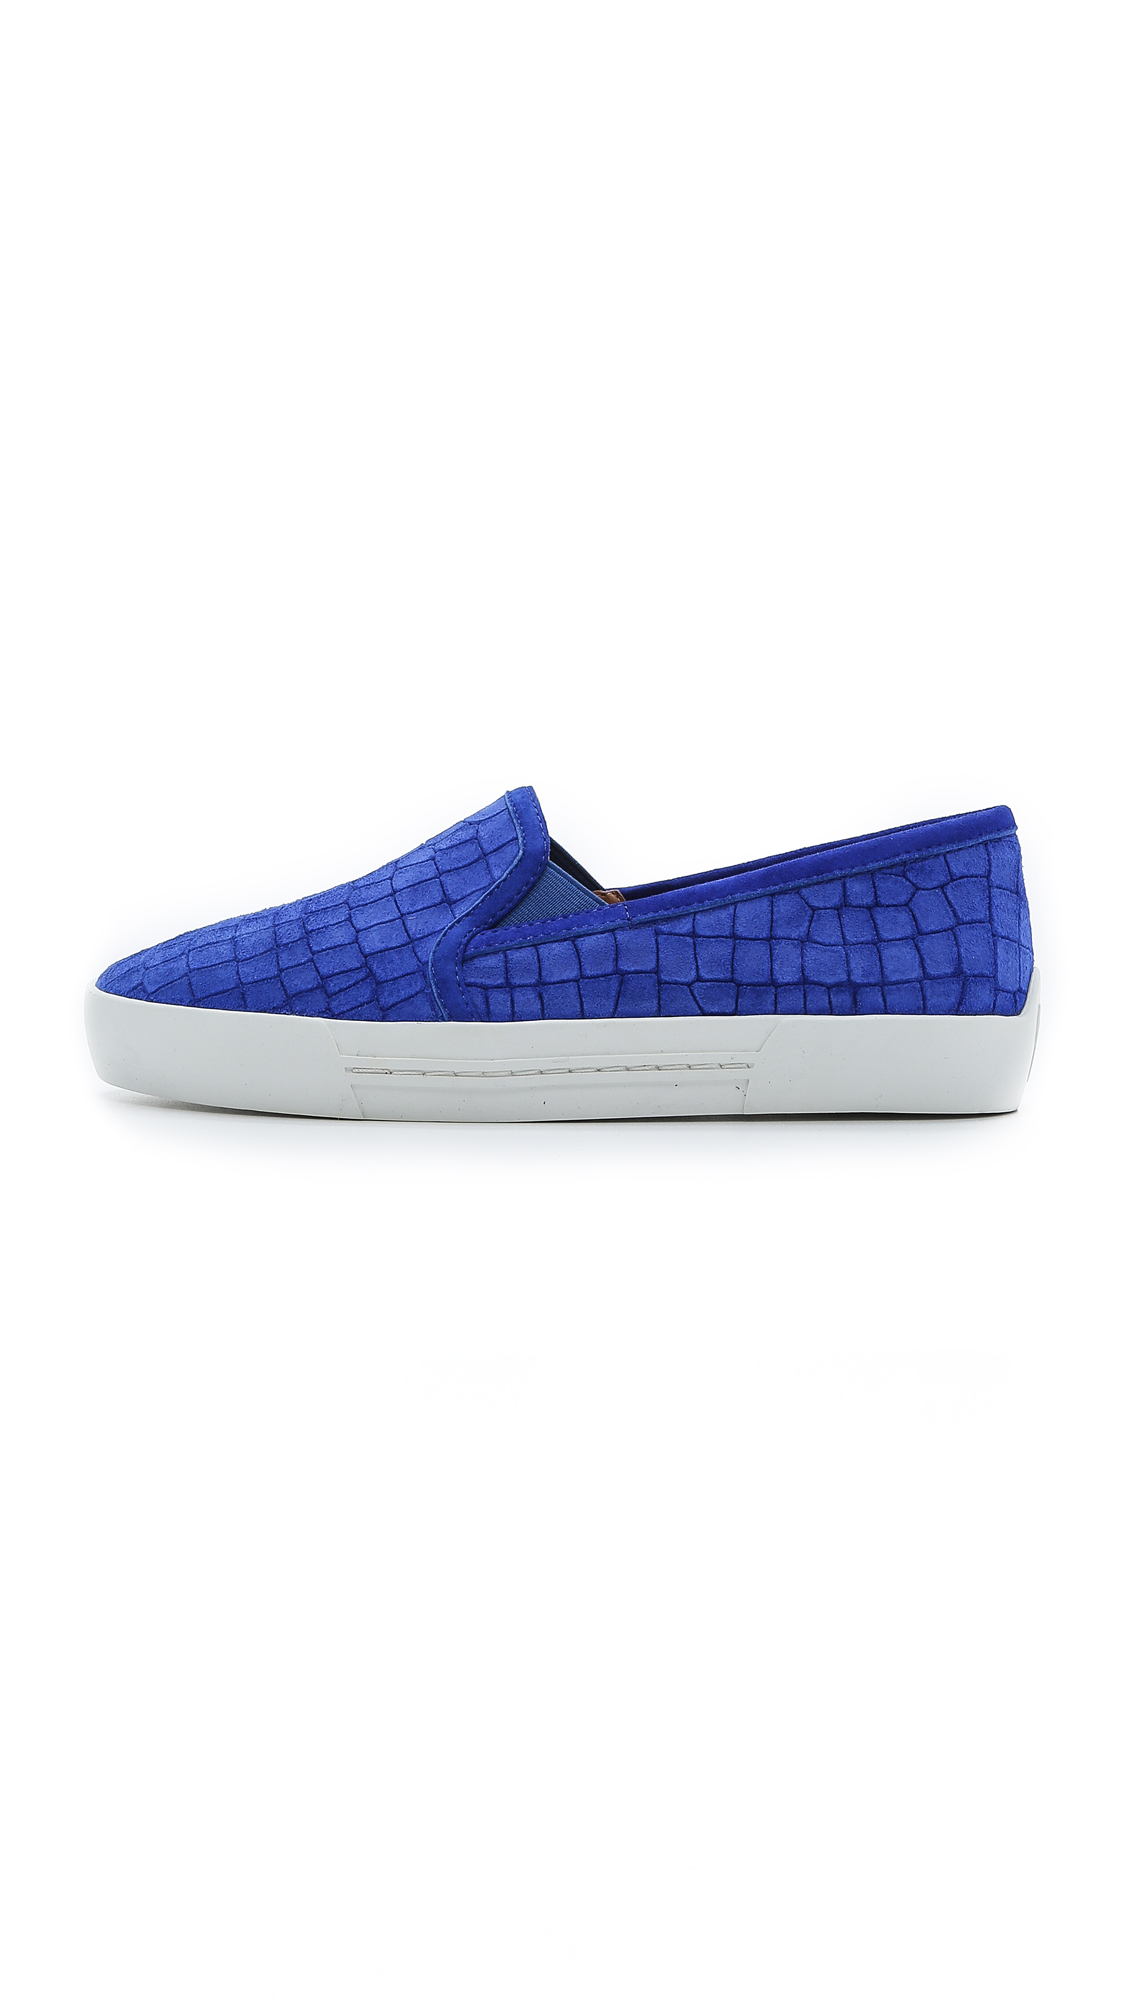 f9b246fea09bb7 Joie Huxley Slip On Suede Sneakers